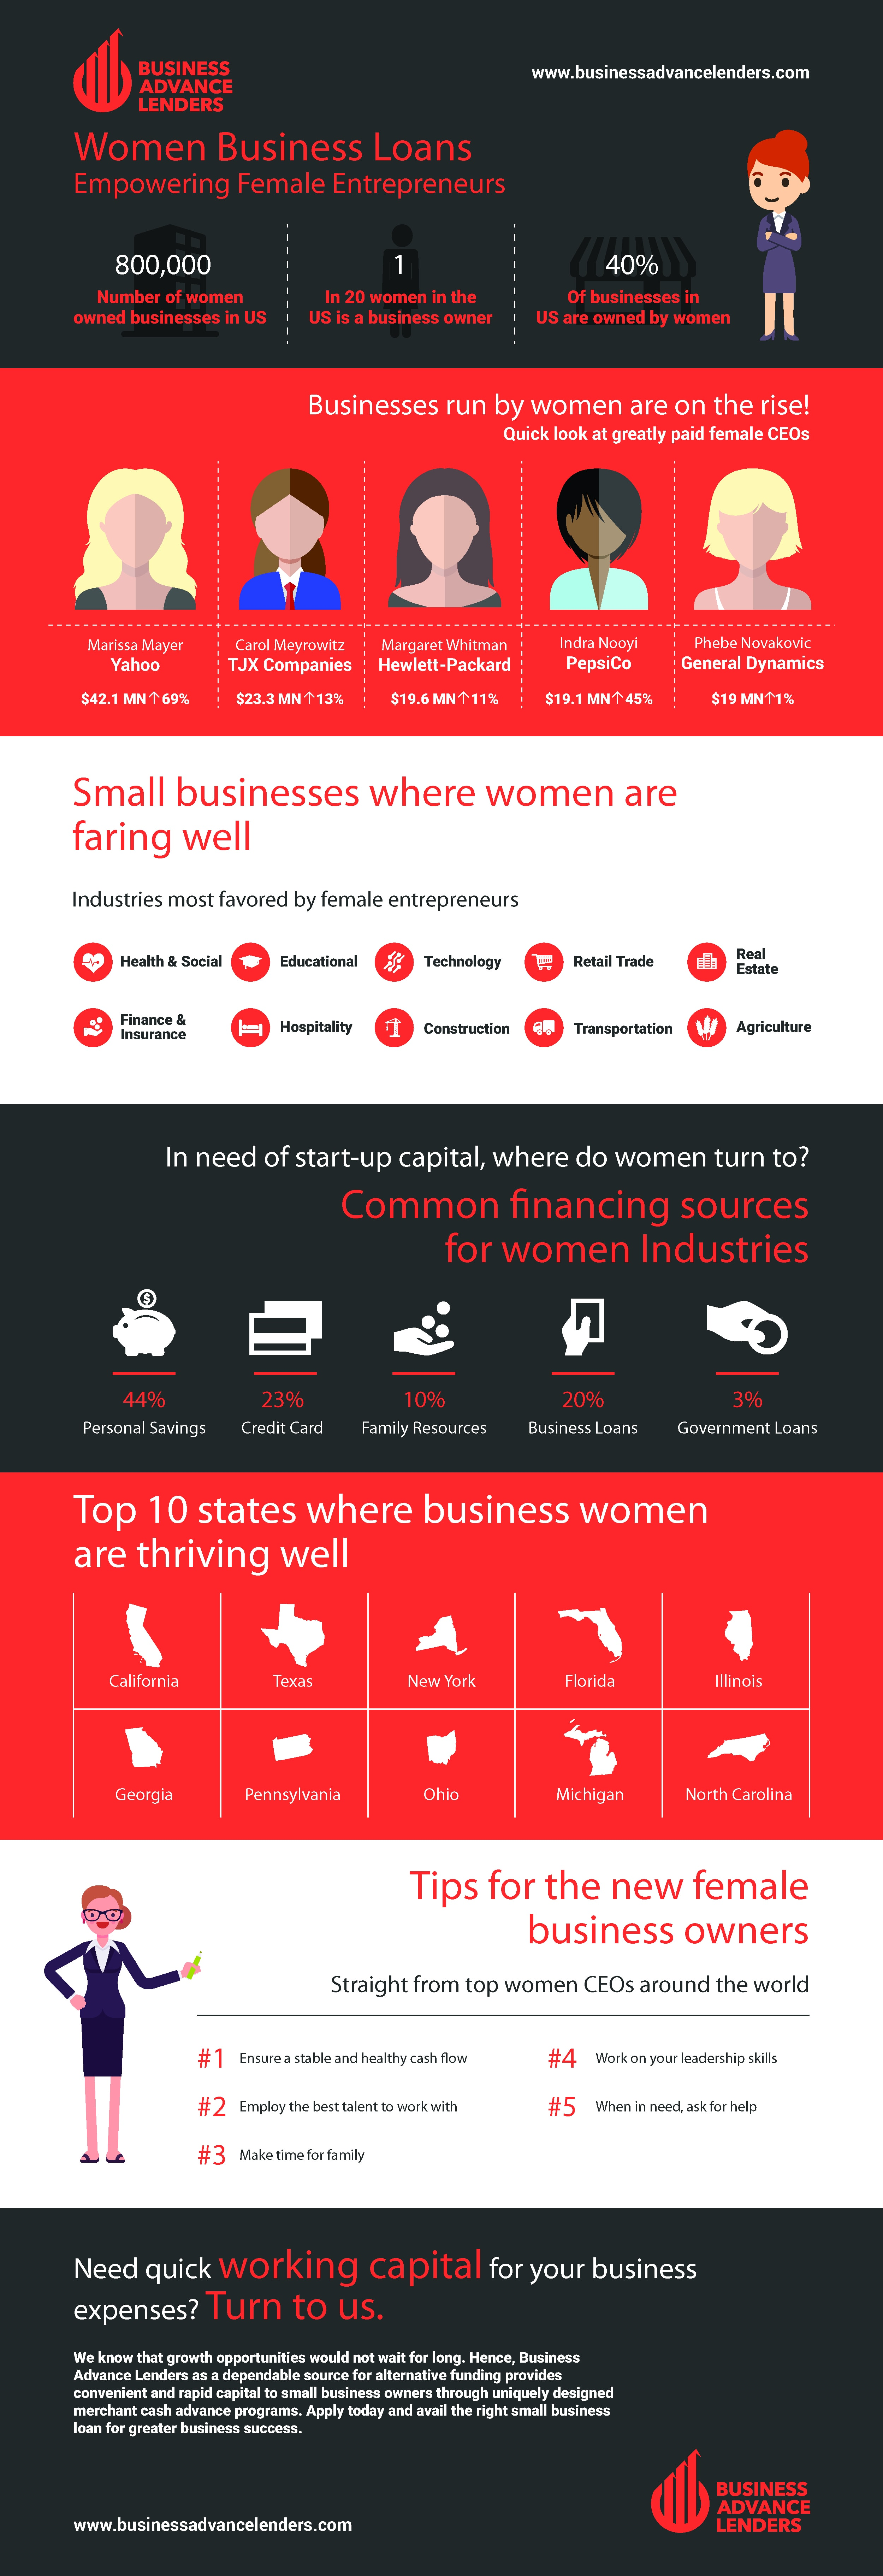 Women Business Loans | Small Business Loans for Women Businesses